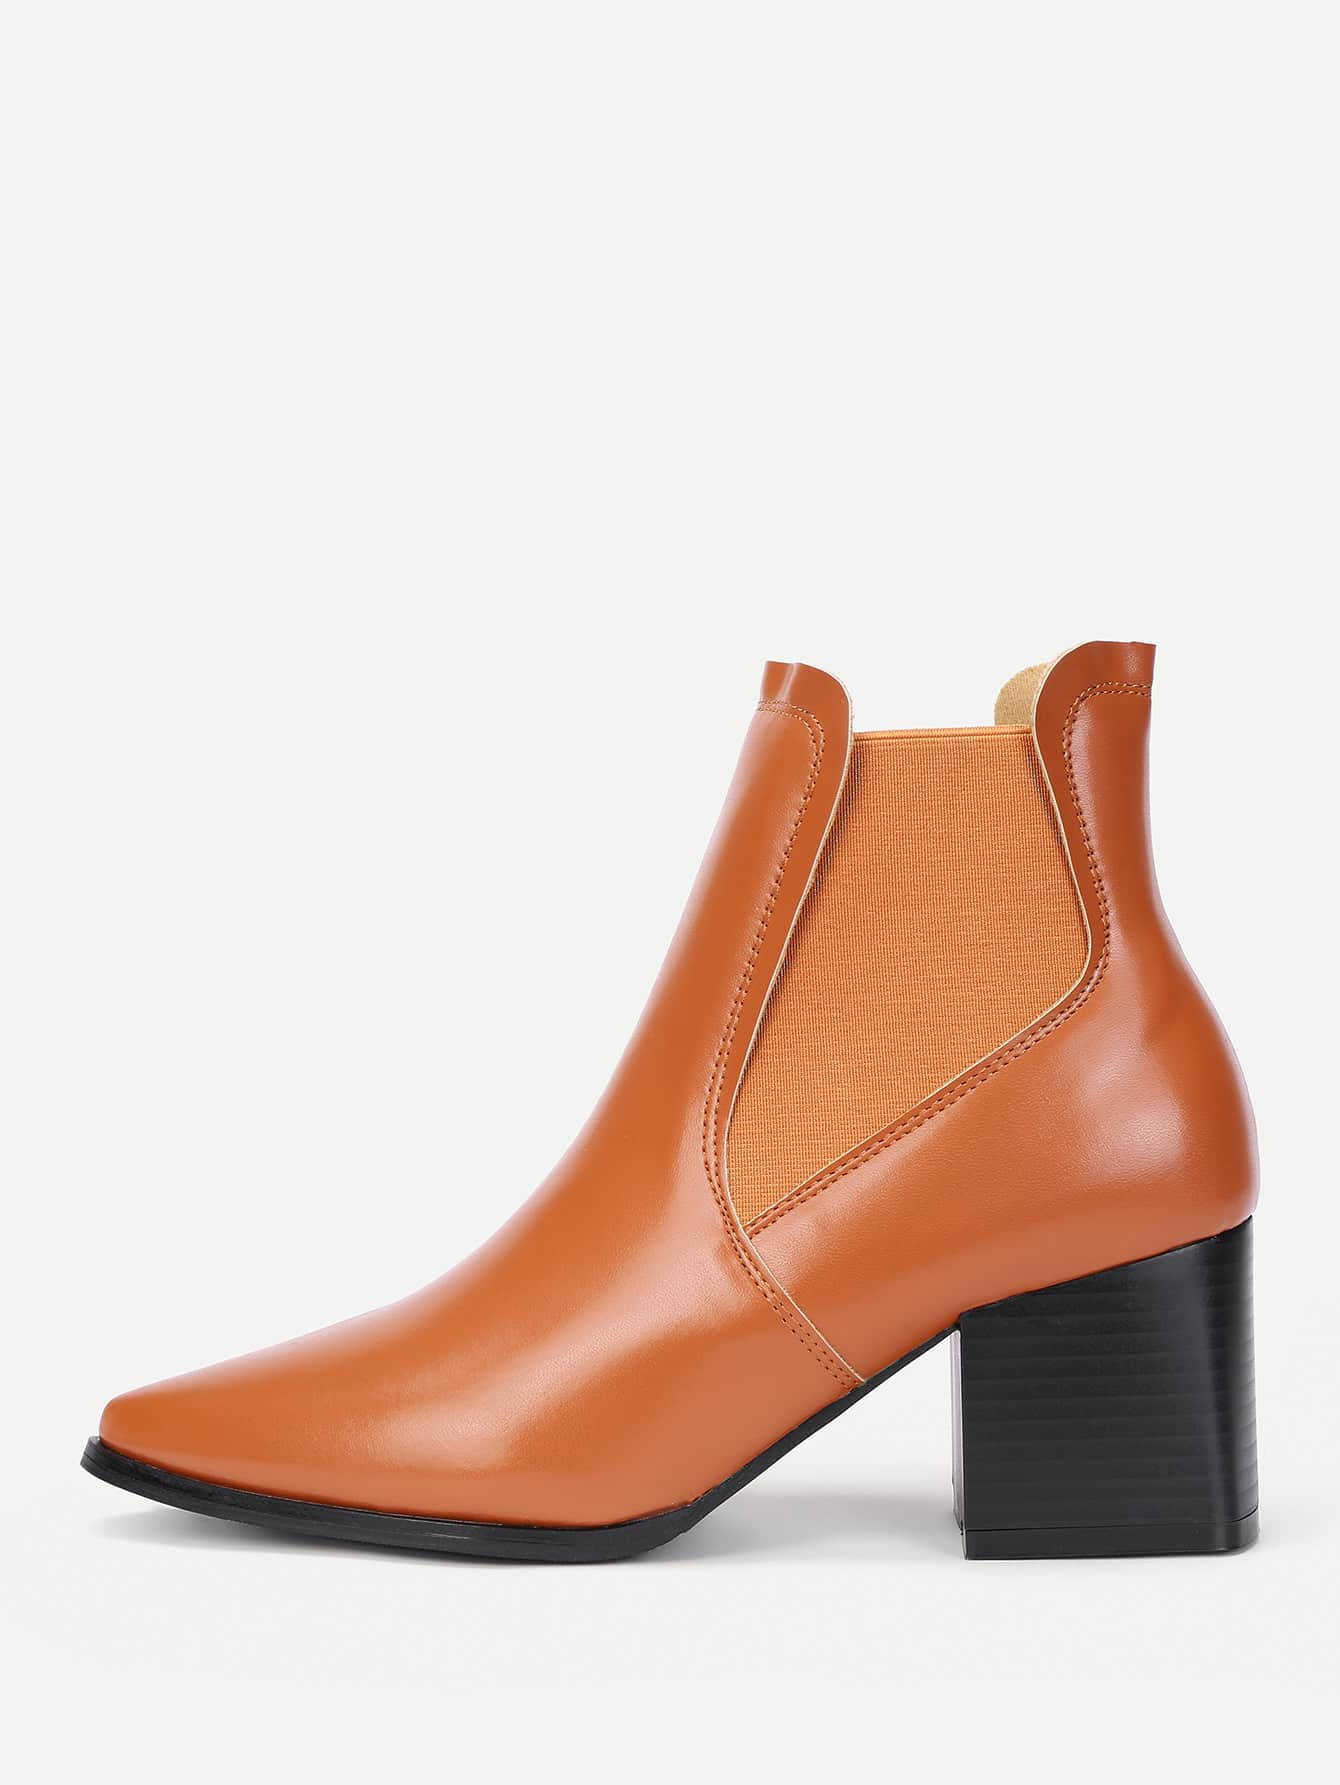 Pointed Toe Faux Leather PU Boots